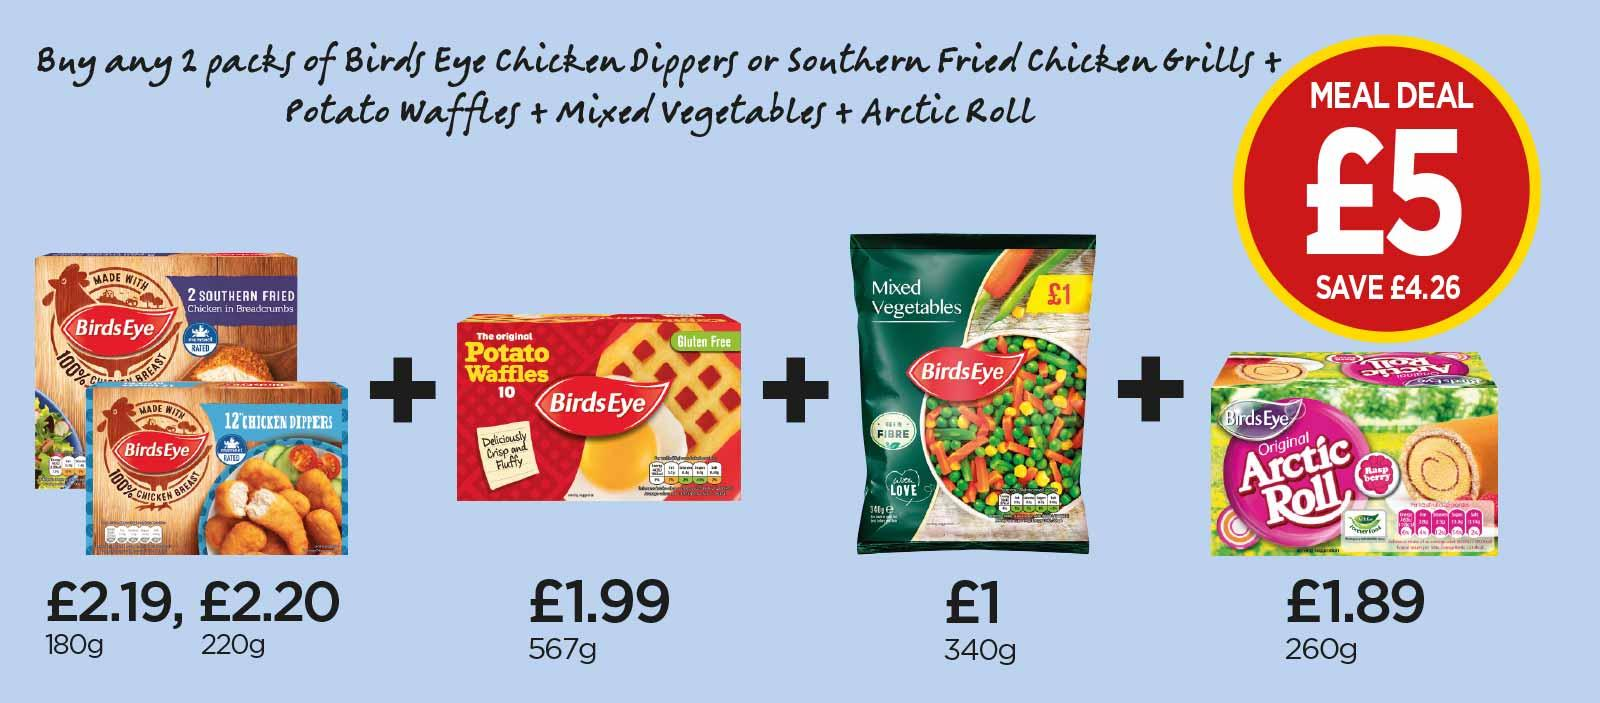 FROZEN MEAL DEAL: Birds Eye 12 Chicken Dippers, 2 Southern Fried Chicken Grills, 10 Potato Waffles, Mixed Vegetables, Arctic Roll Raspberry - £5 at Budgens